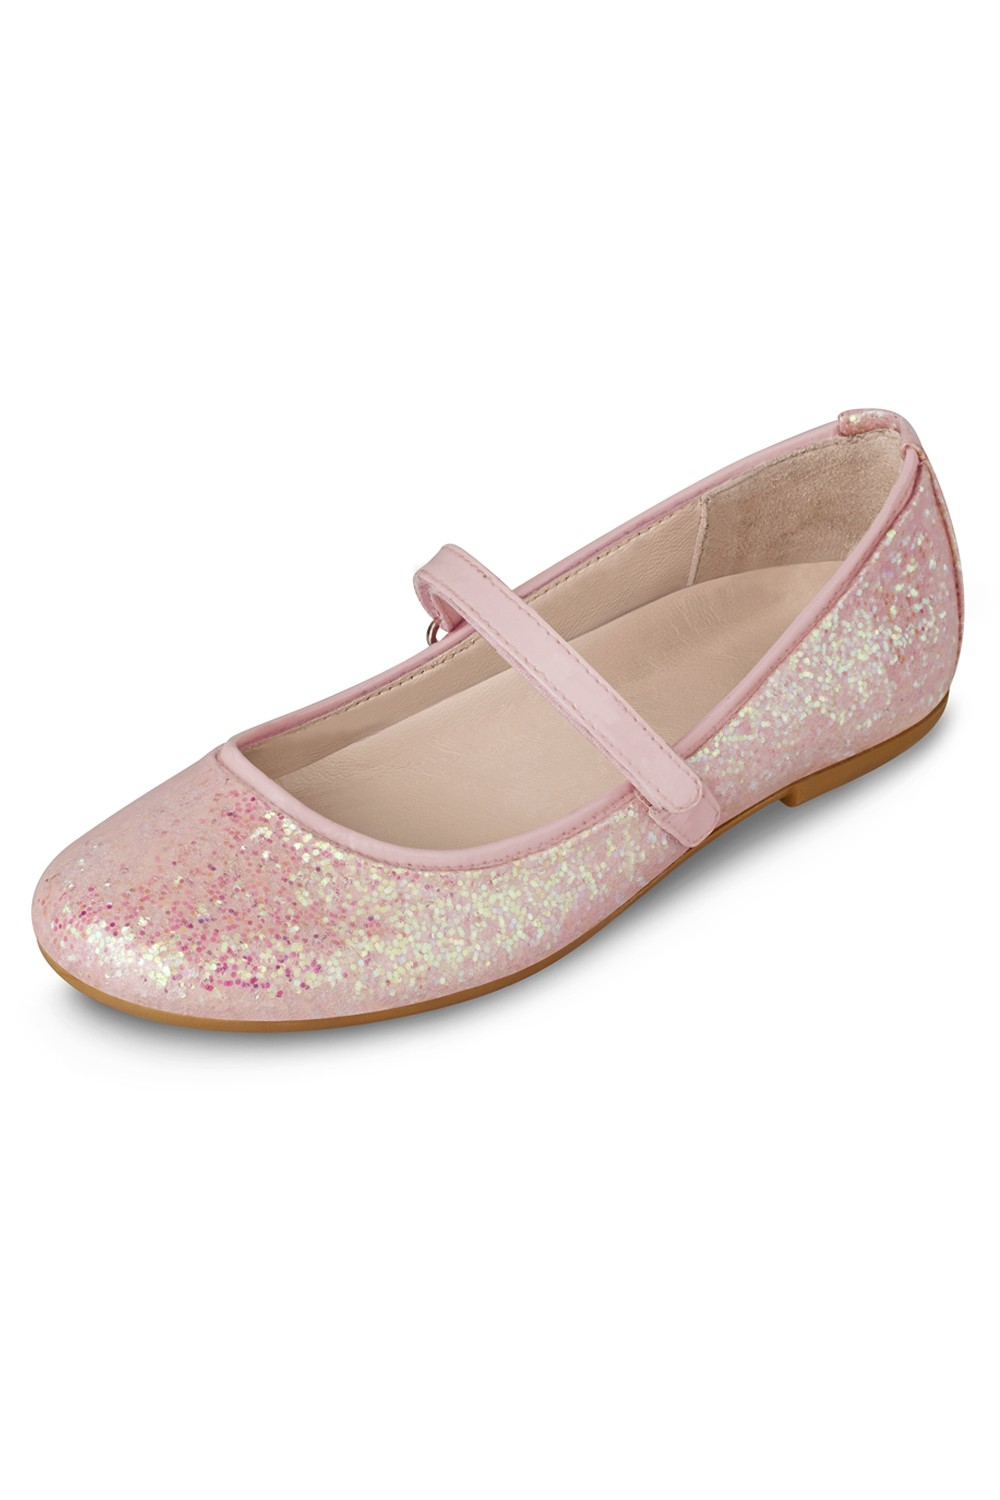 Laine Girls Ballet Flats Girls Fashion Shoes